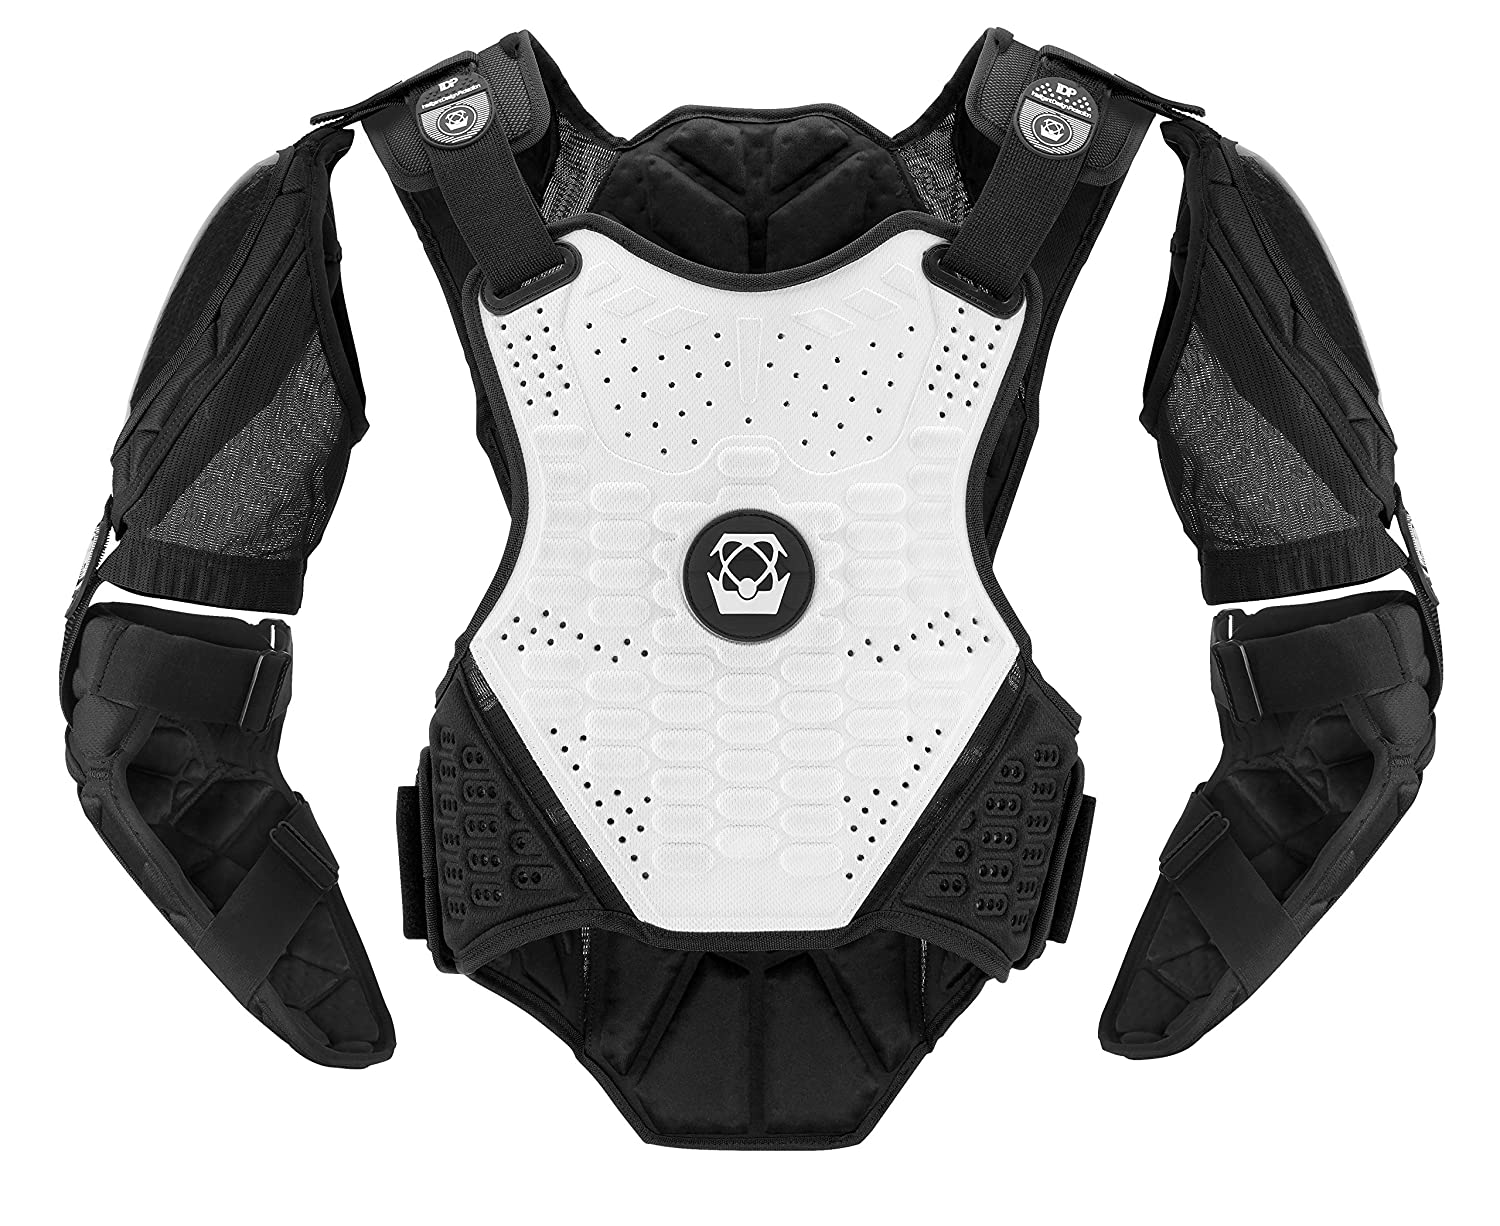 Atlas 2018 Adult Guardian Body Armor - GPF (White - LG/XL)